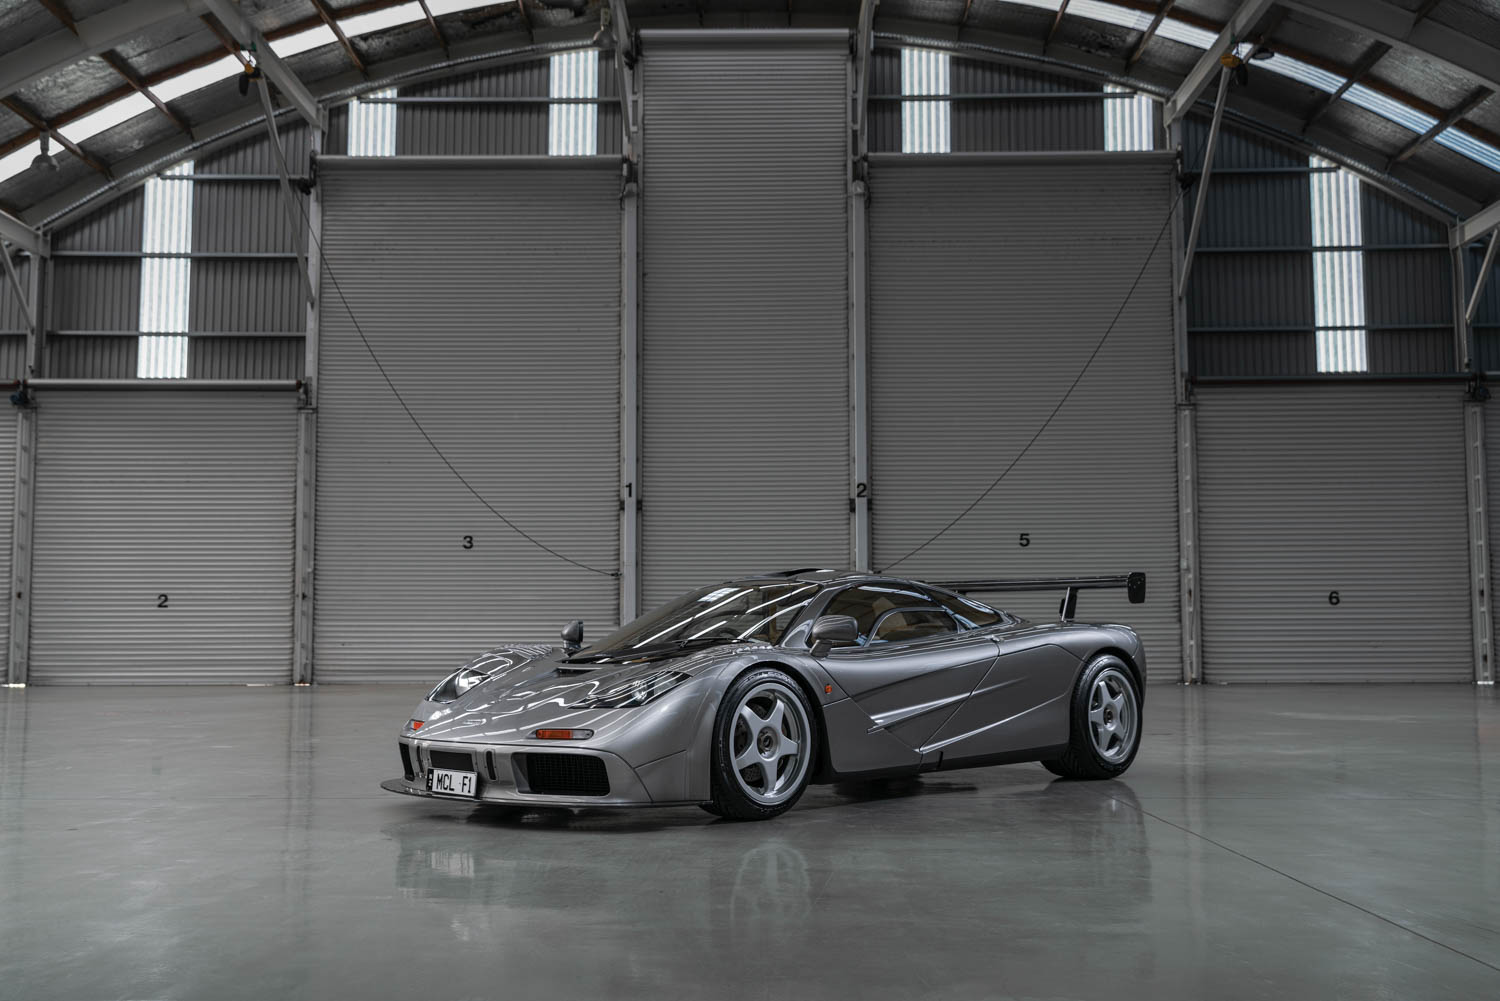 1994 McLaren F1 'LM-Specification' front 3/4